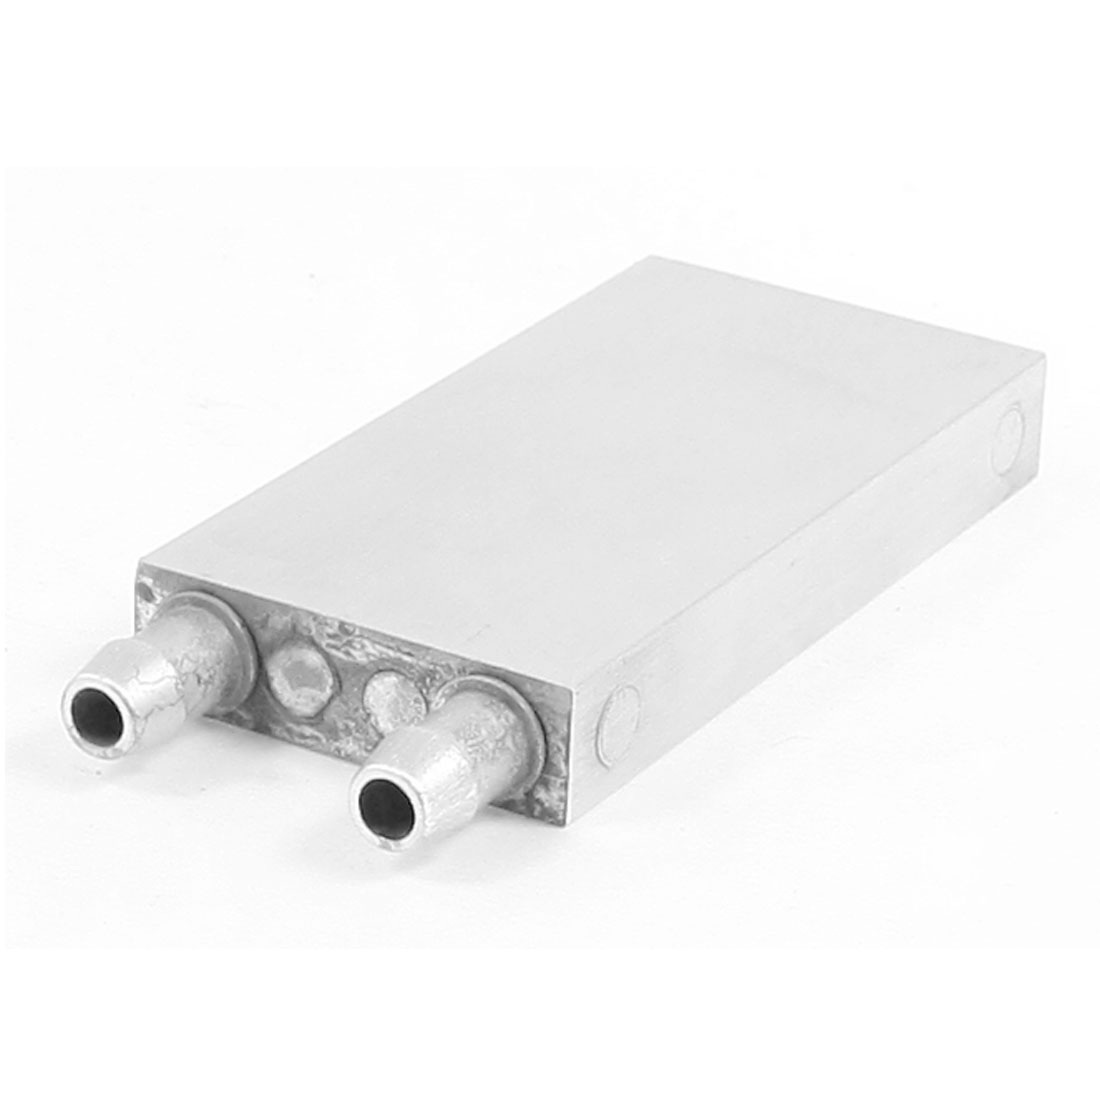 80x40x12mm Aluminum Water Cooling Block for CPU Graphics Radiator Heatsink